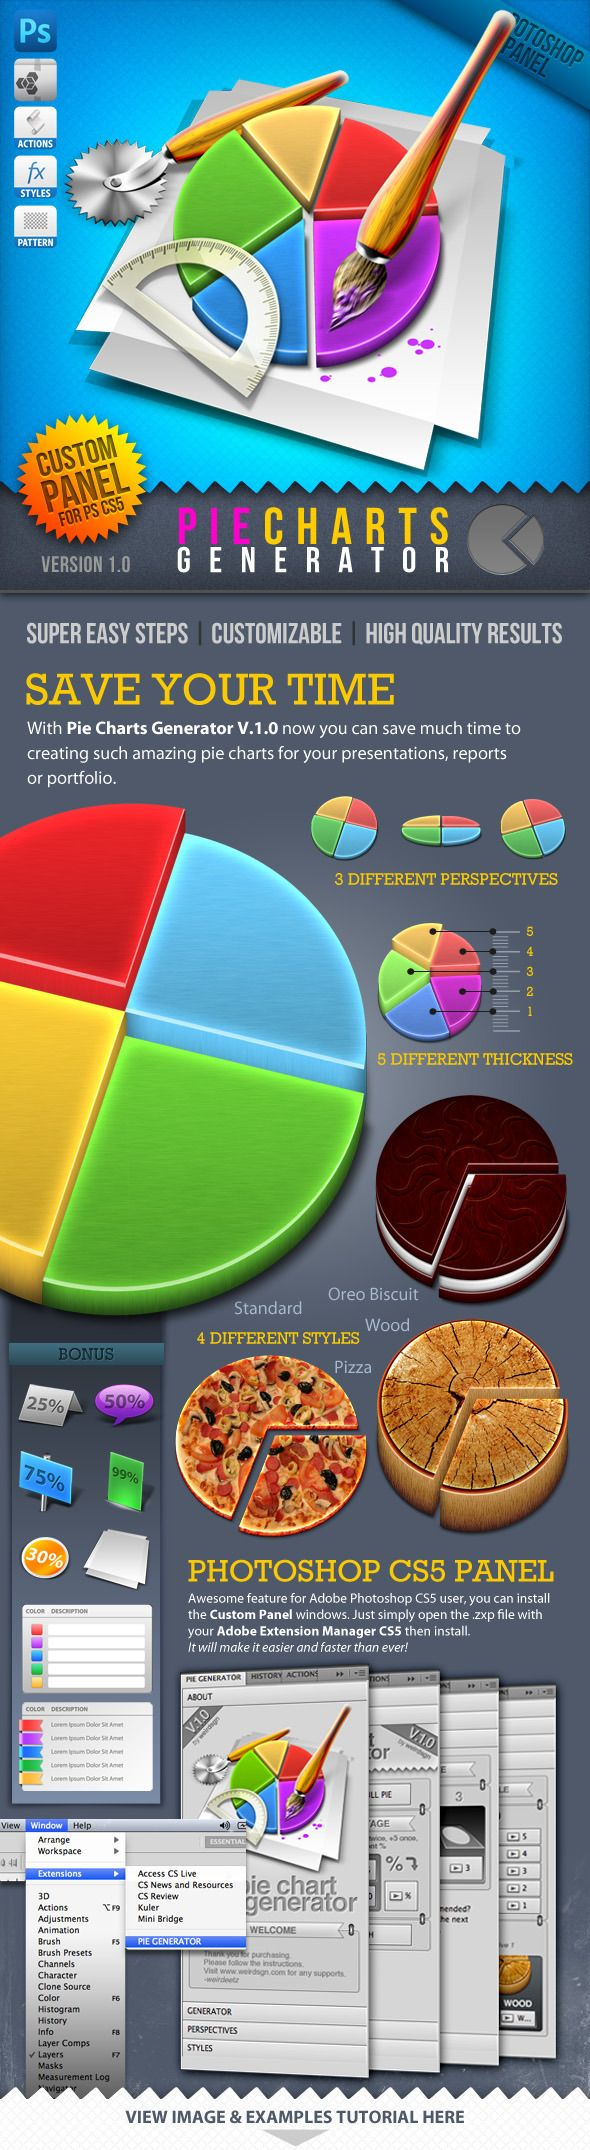 Infographic Tool Series: 3D Pie Charts Generator  #pattern #percentage #photoshop • Available here → http://graphicriver.net/item/infographic-tool-series-3d-pie-charts-generator/888921?s_rank=117&ref=pxcr